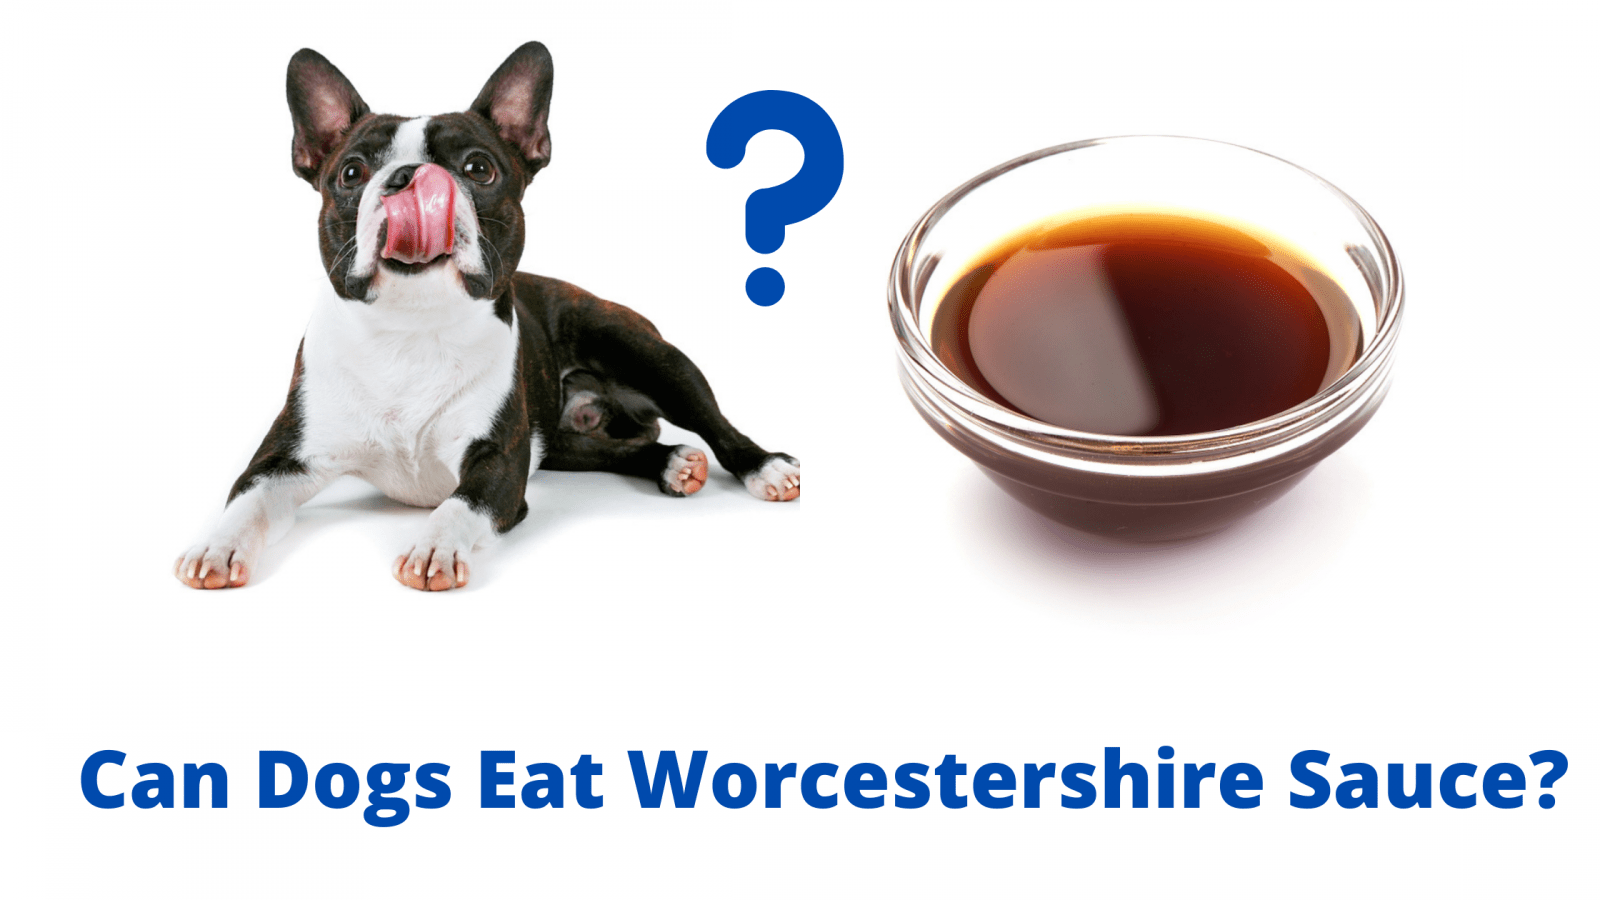 Can Dogs Eat Worcestershire Sauce